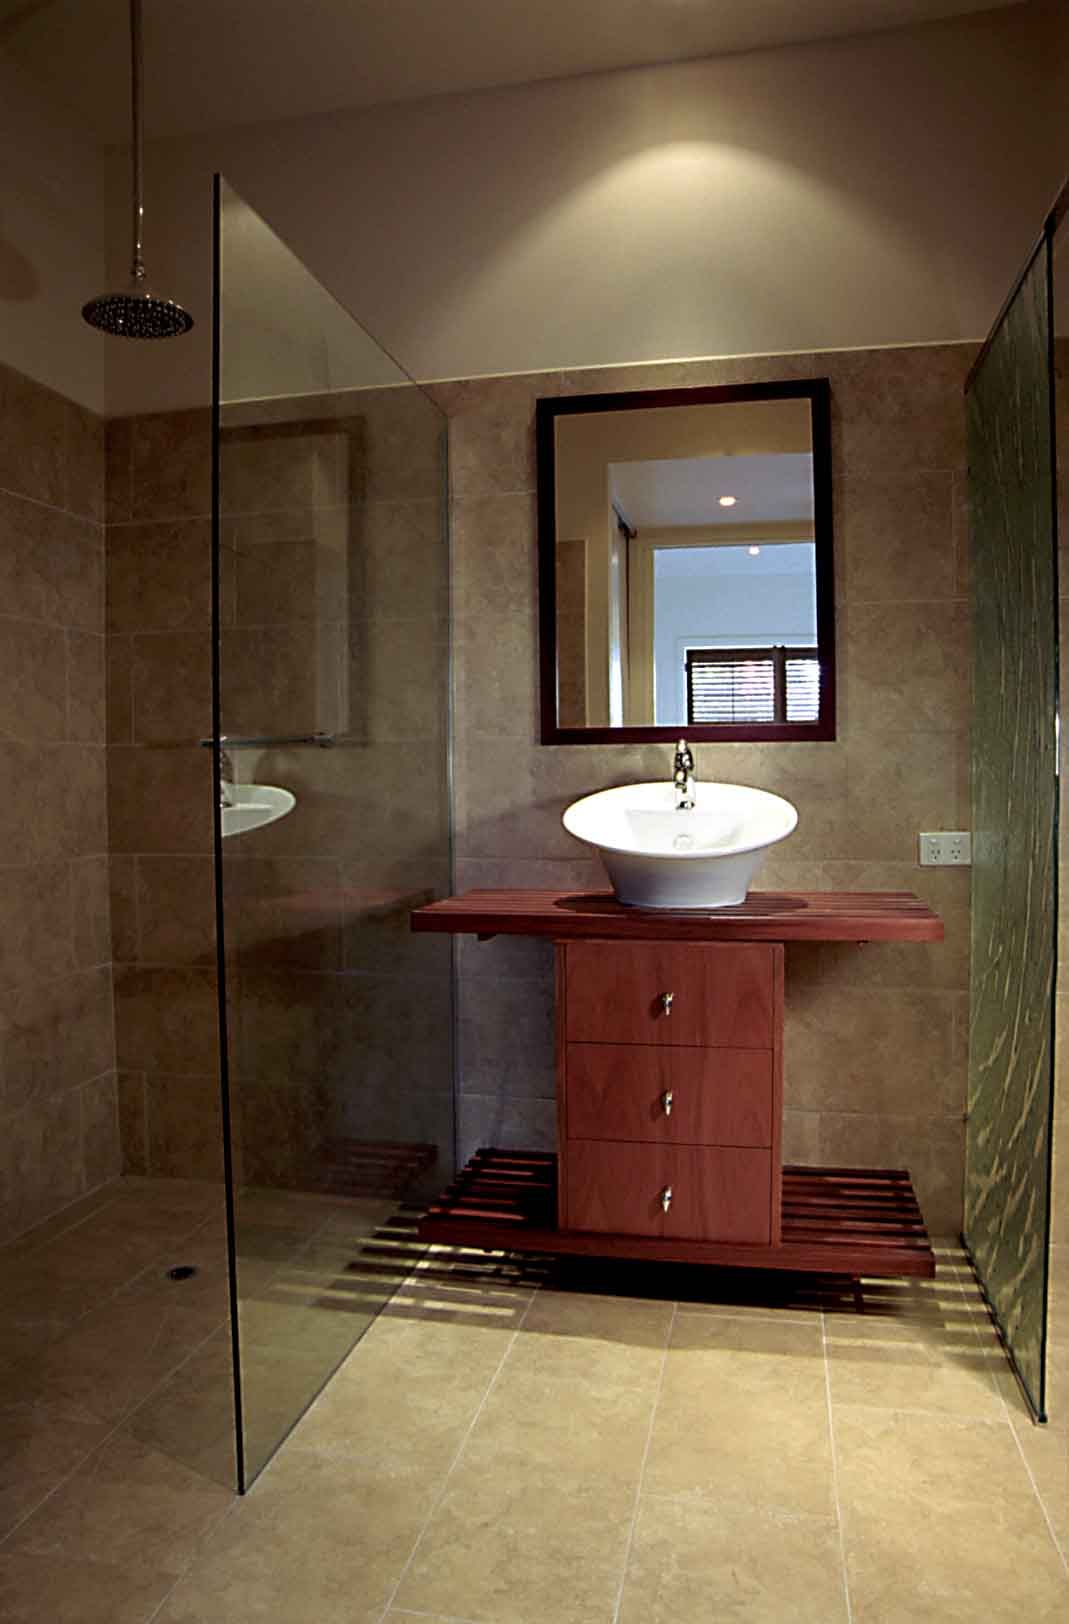 Wet room design for small bathrooms small ensuite Small ensuites designs